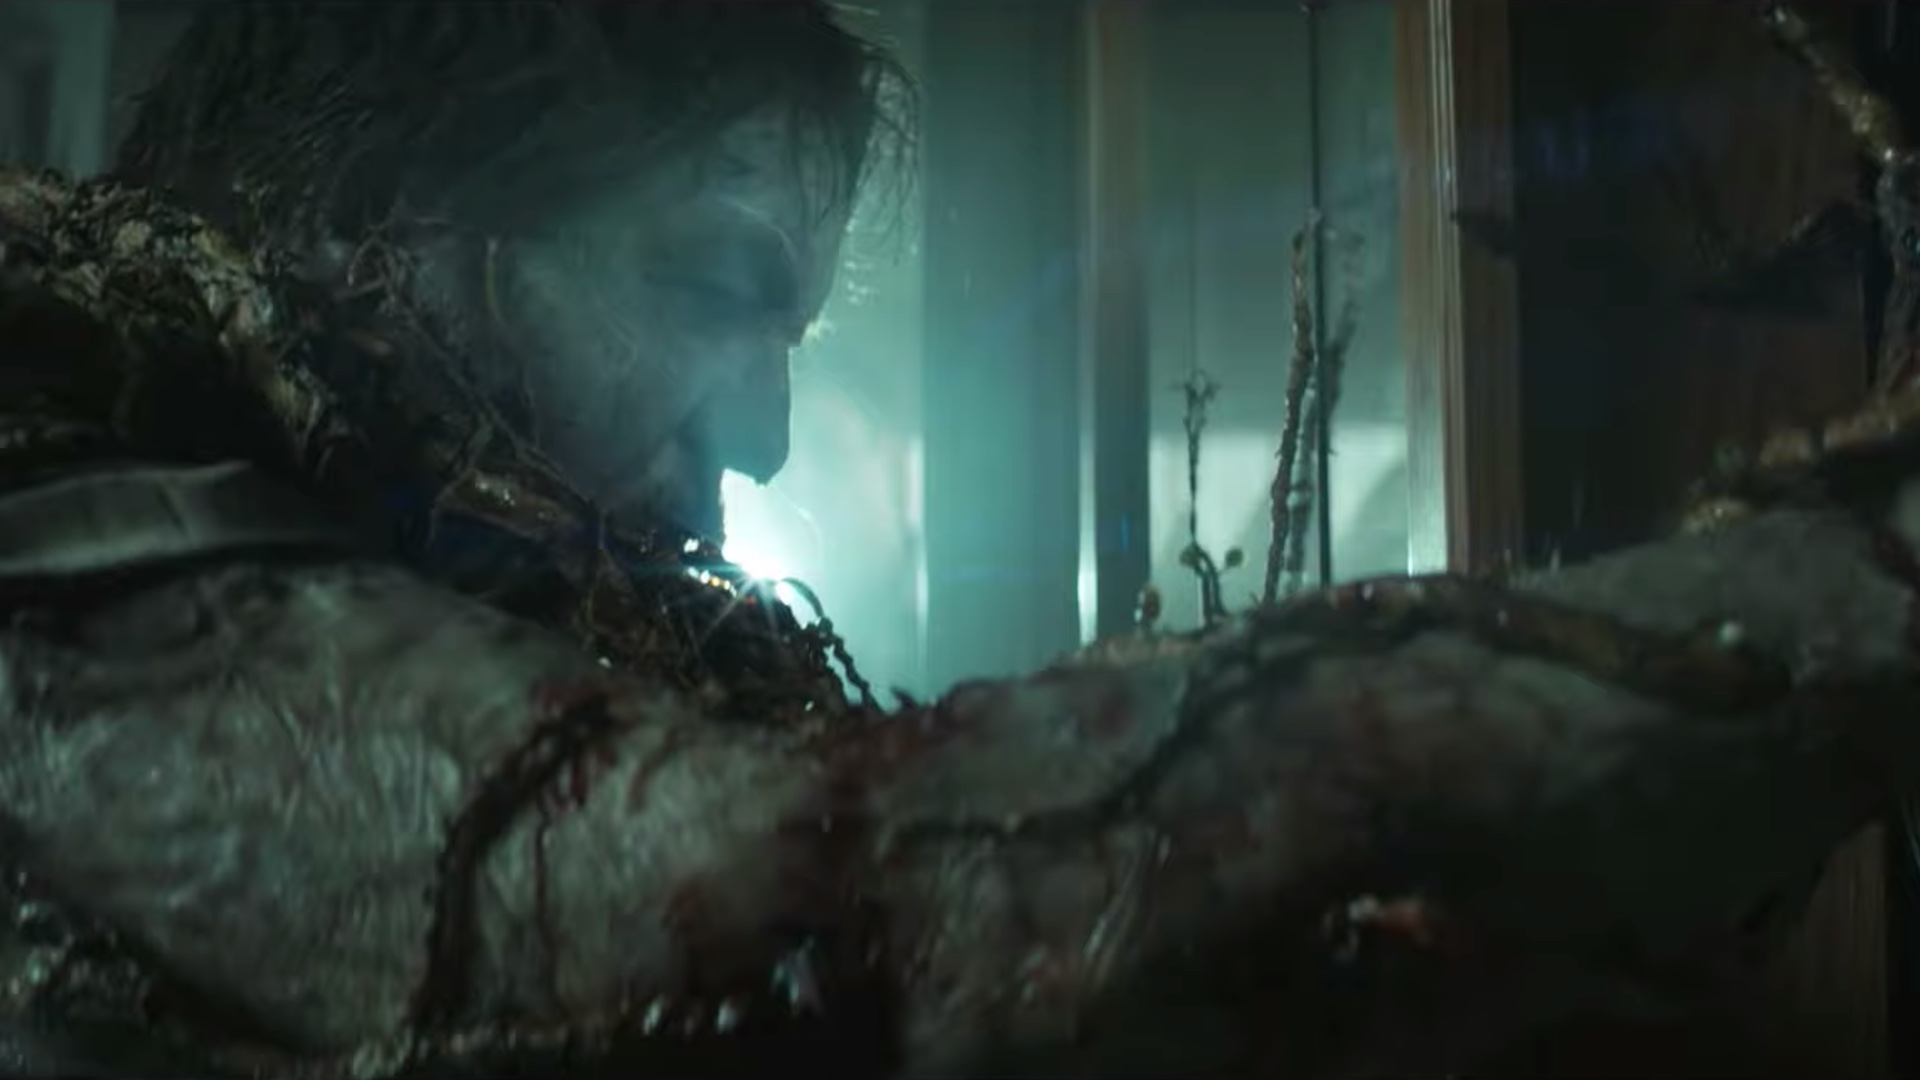 dc-universe-releases-a-new-intense-trailer-for-swamp-thing-social.jpg